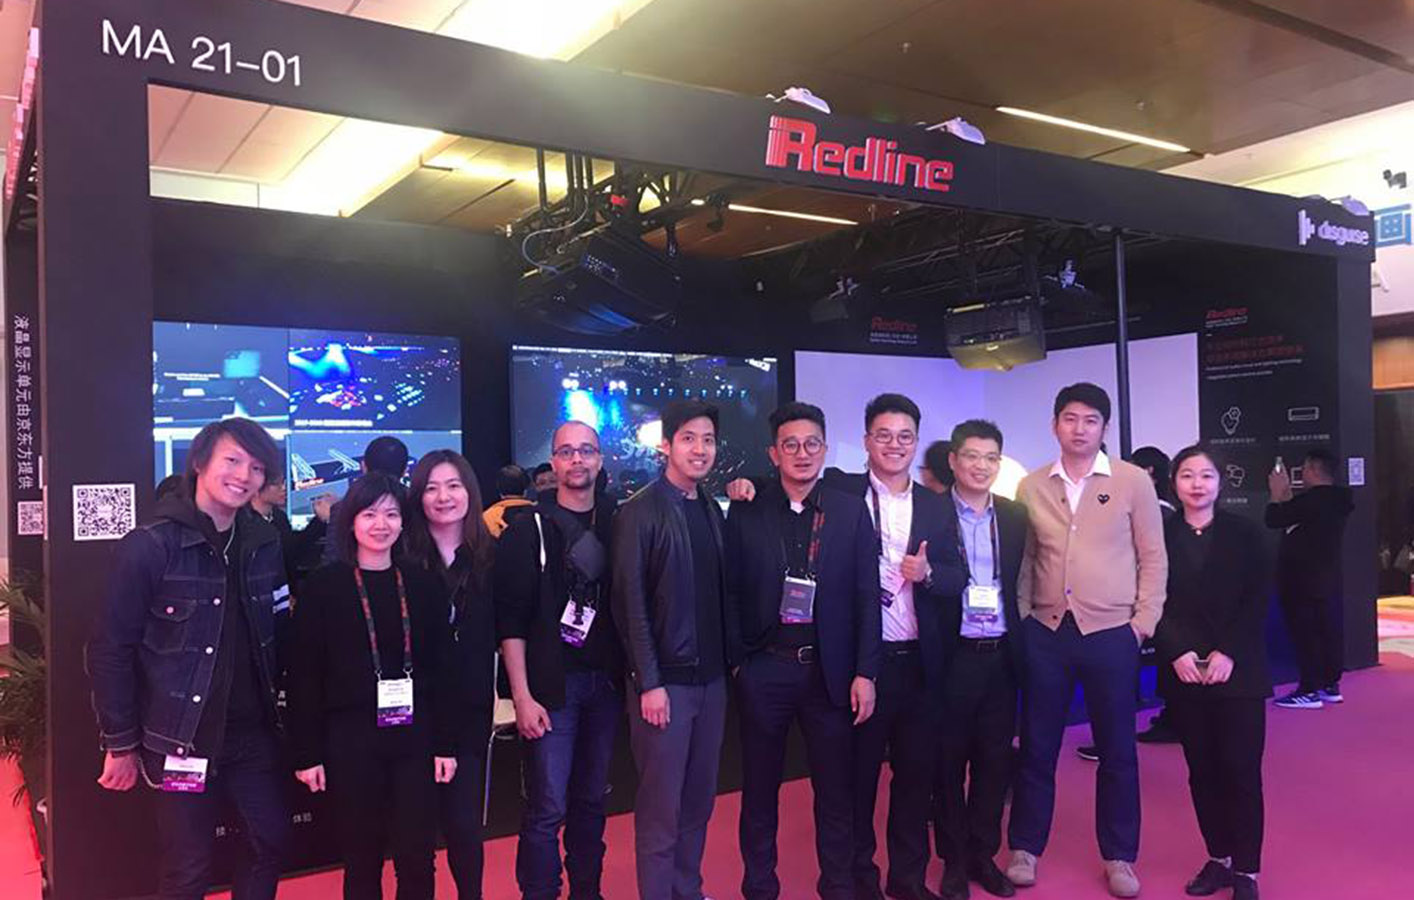 disguise used at the heart of InfoComm China demos